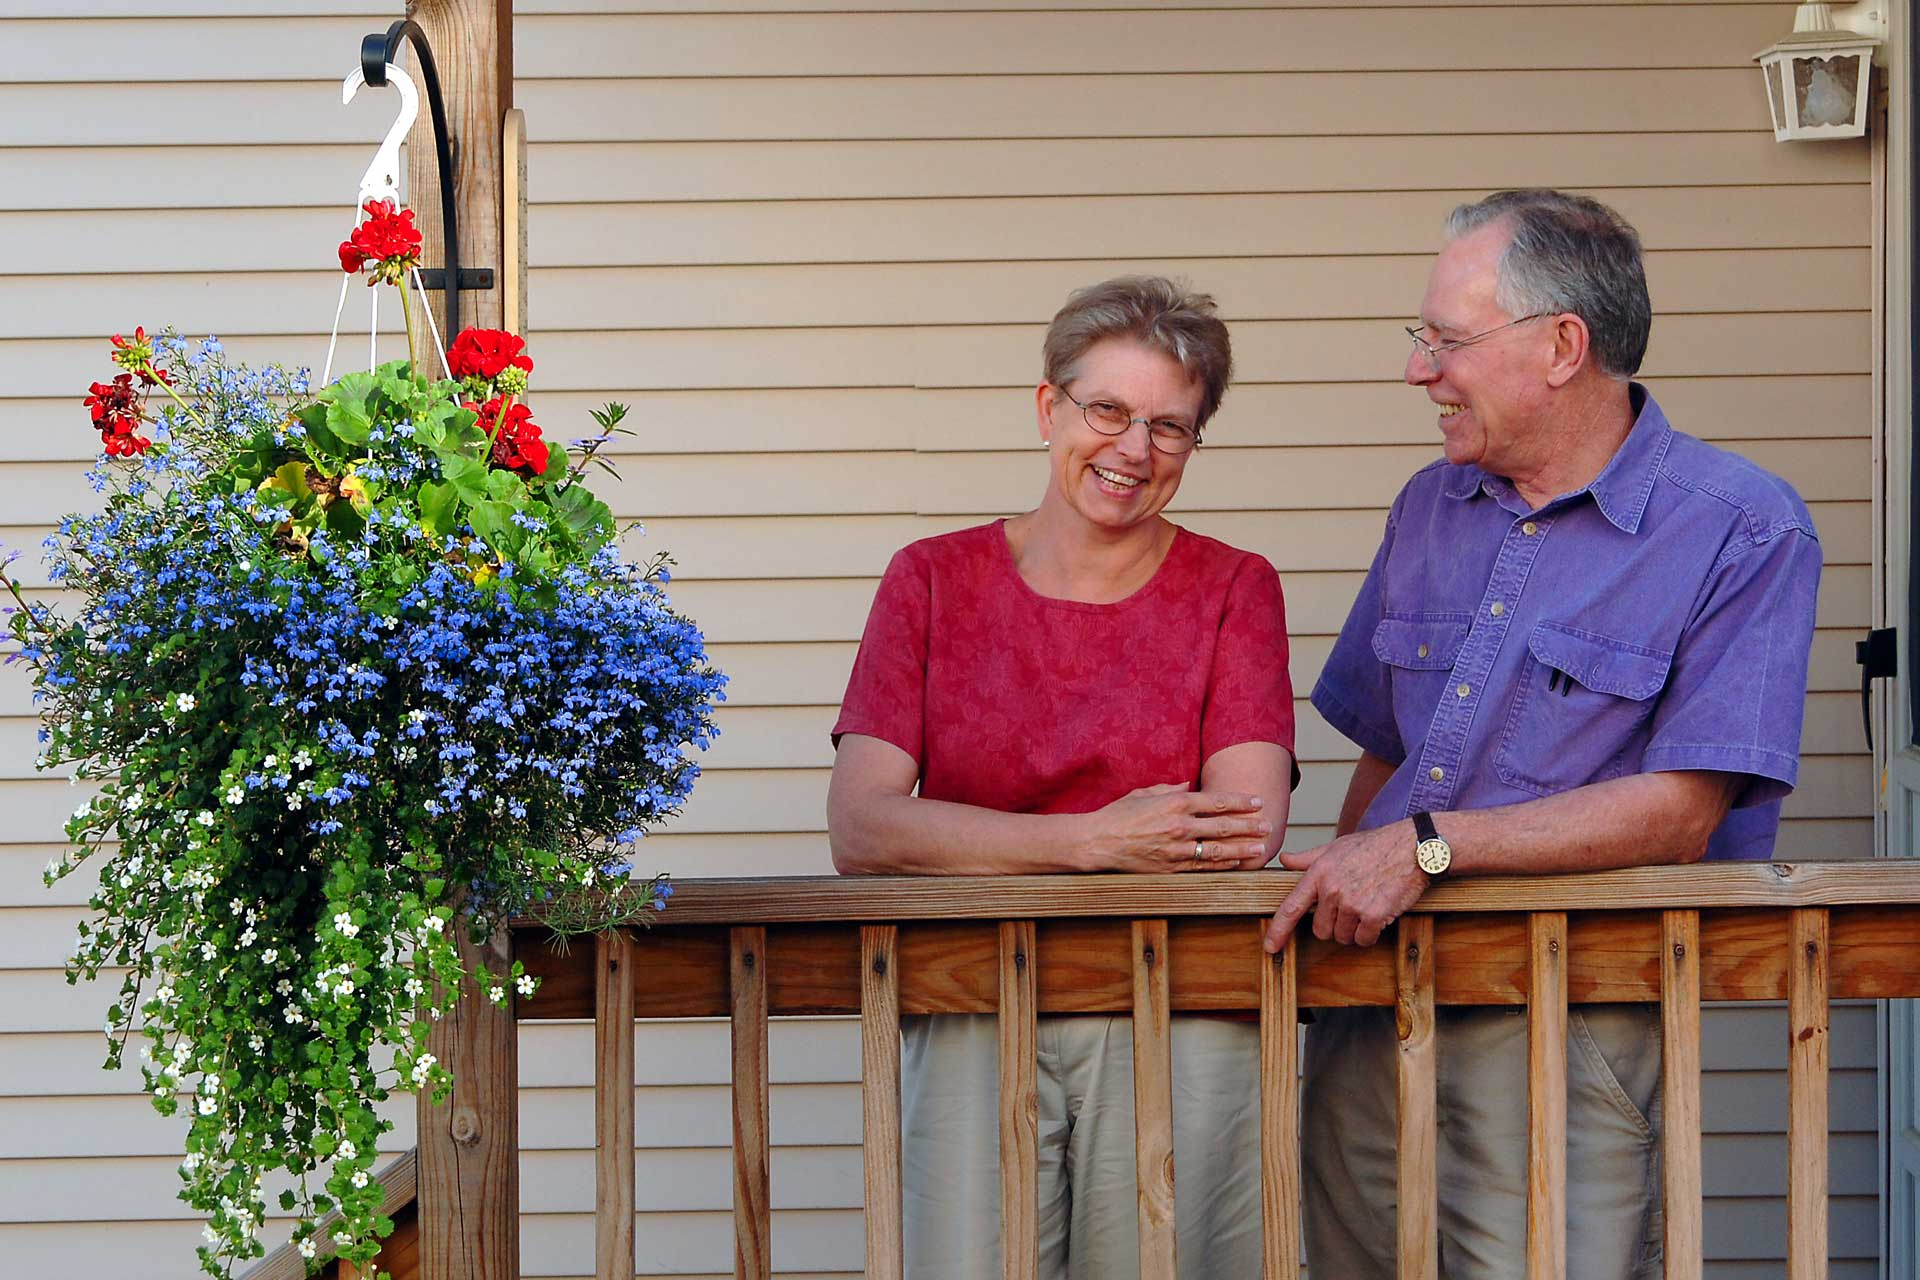 Middle-age couple stands on porch next to flower basket